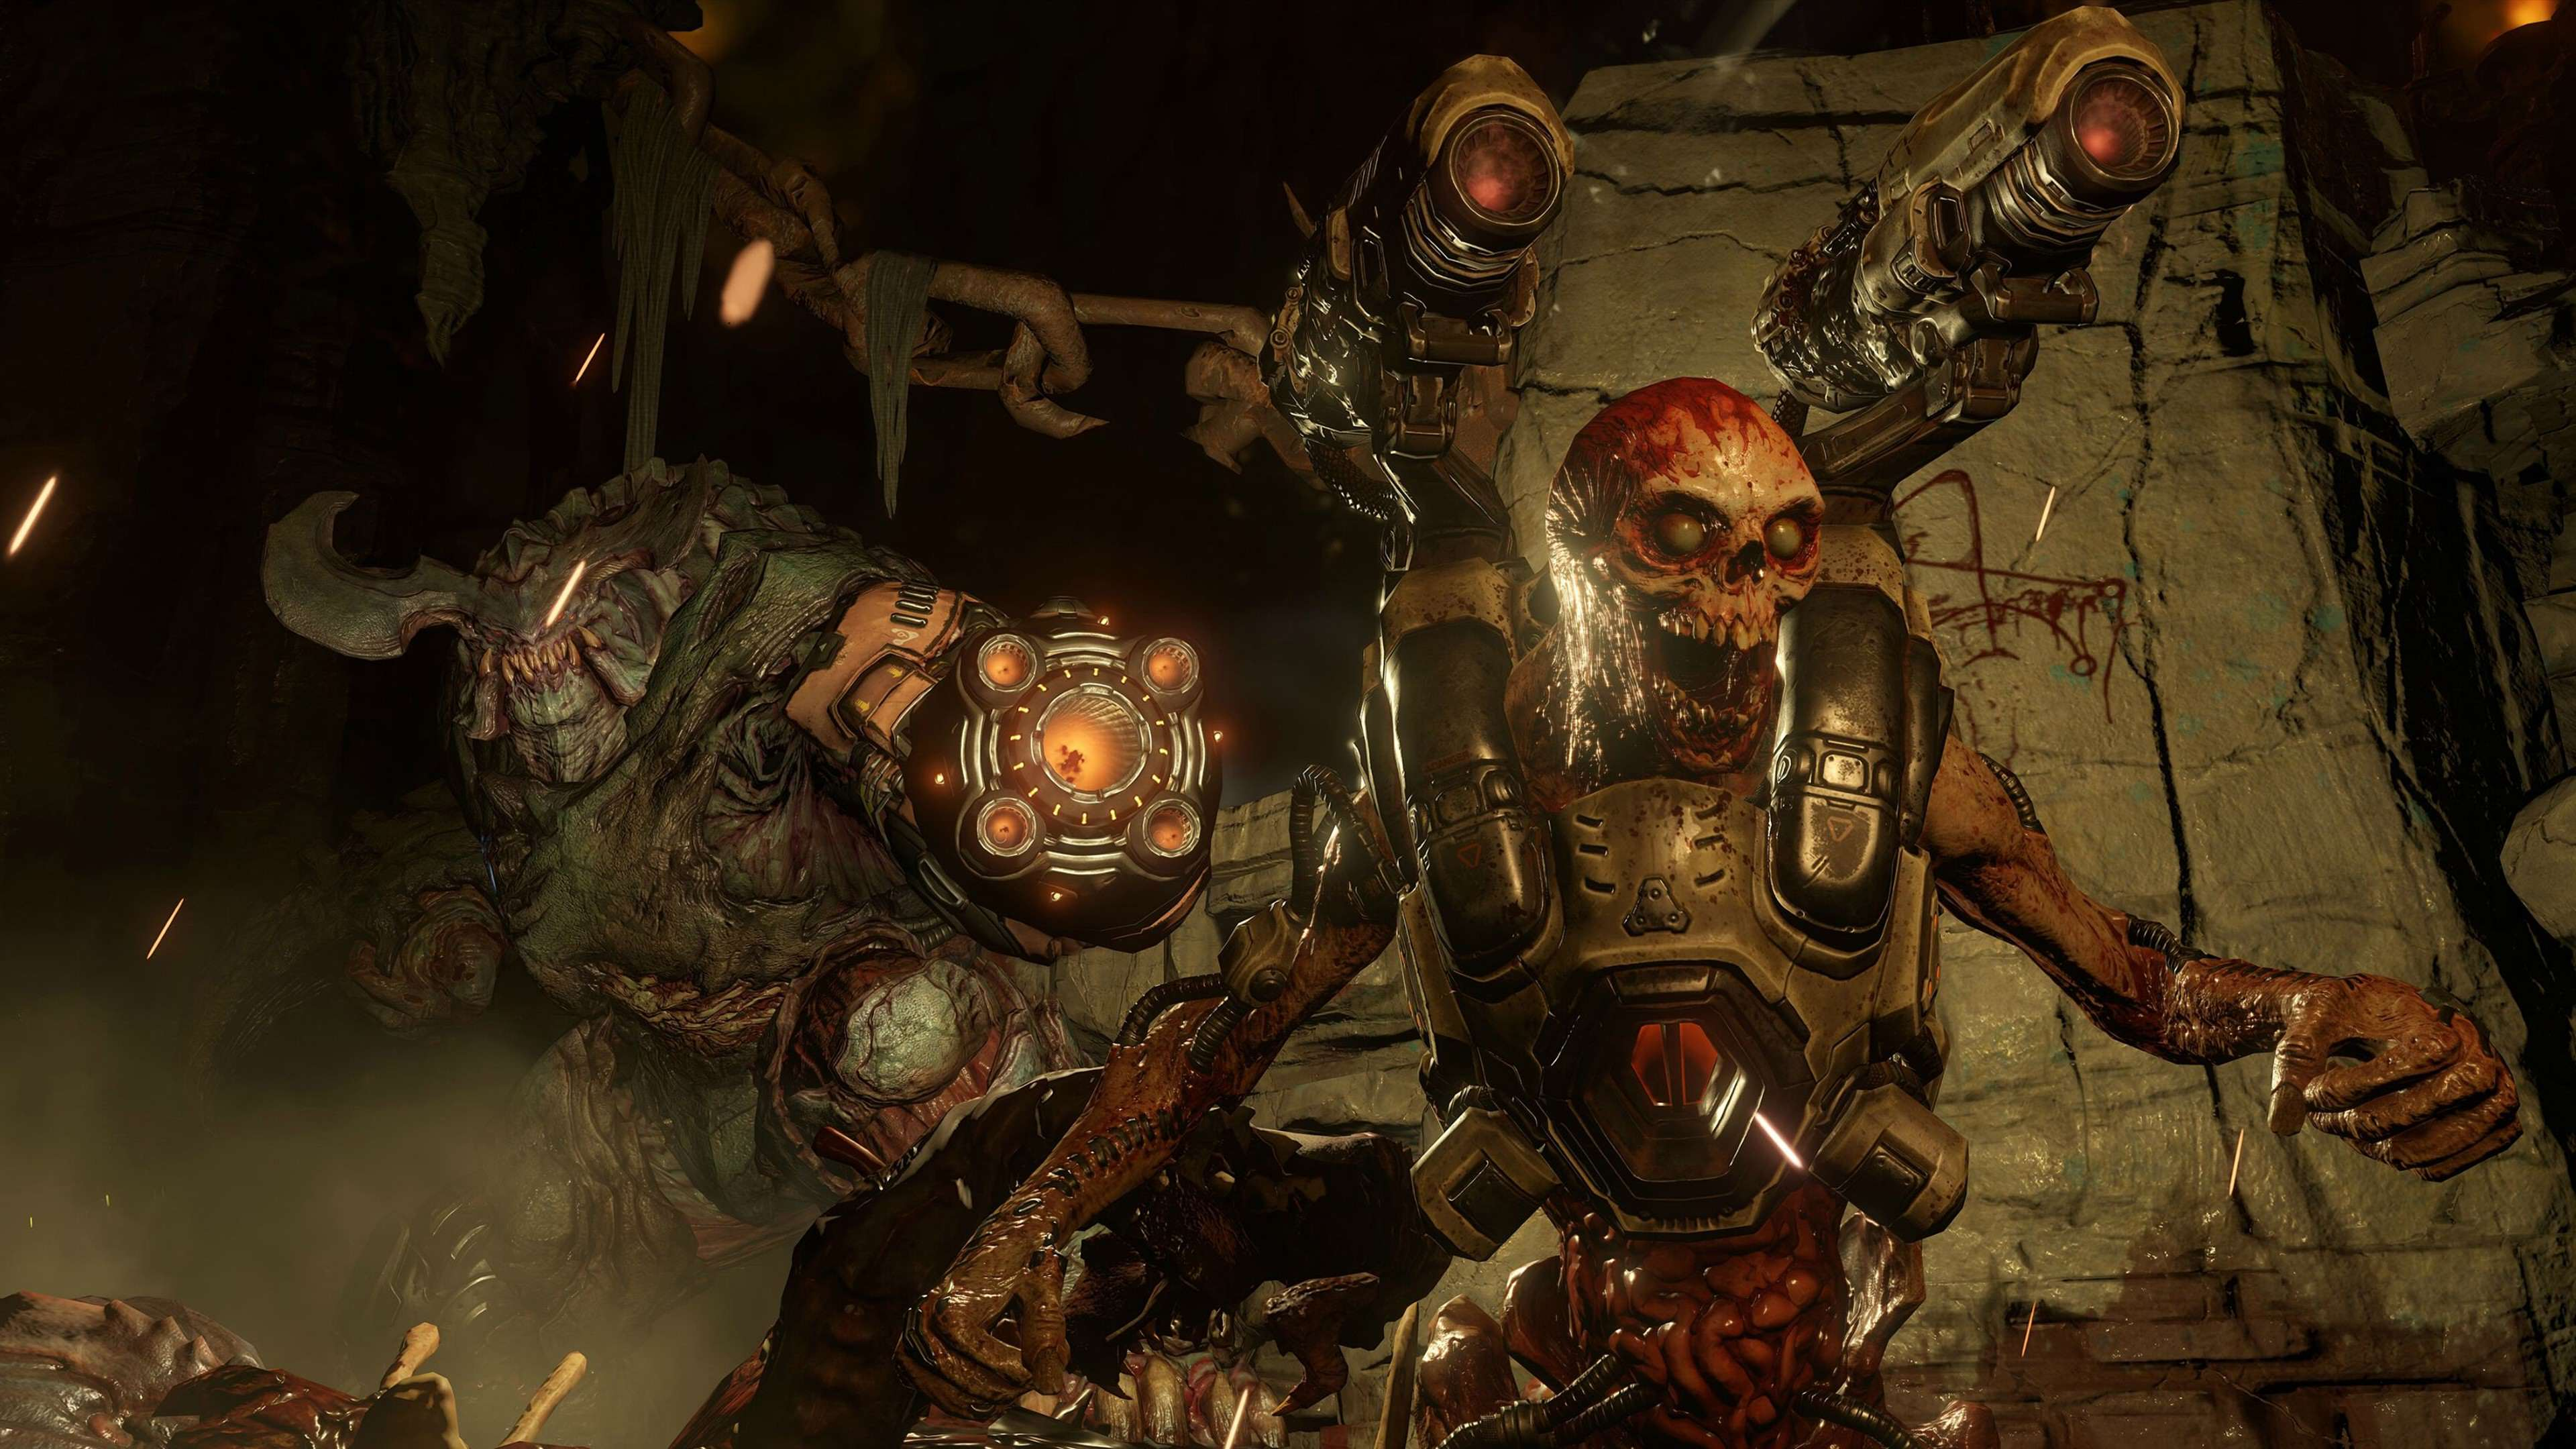 doom game 2016 4k demon picture 3840x2160 The New DOOM Campaign Trailer Just Dropped And Its Brutal As Hell